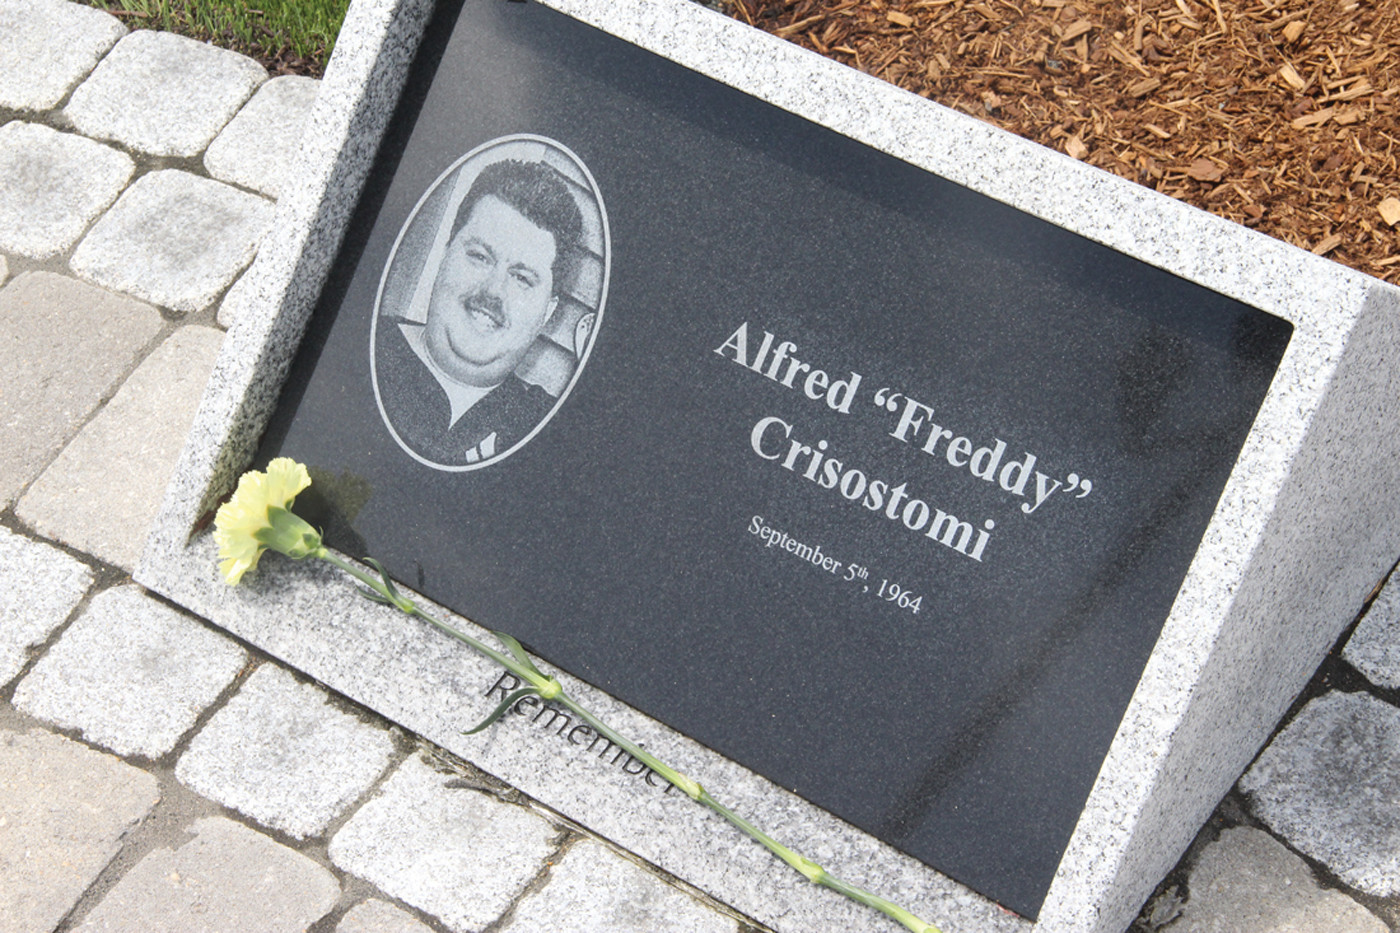 "ONE OF 100 ANGELS: With a flower at his stone, Alfred Crisostomi is one of the 100 who lost their lives in The Station nightclub fire on Feb. 20, 2003. Alfred, ""Freddy"" as he was known, was the fiancé of fire survivor Gina Russo, who heads the Station Fire Memorial Foundation."